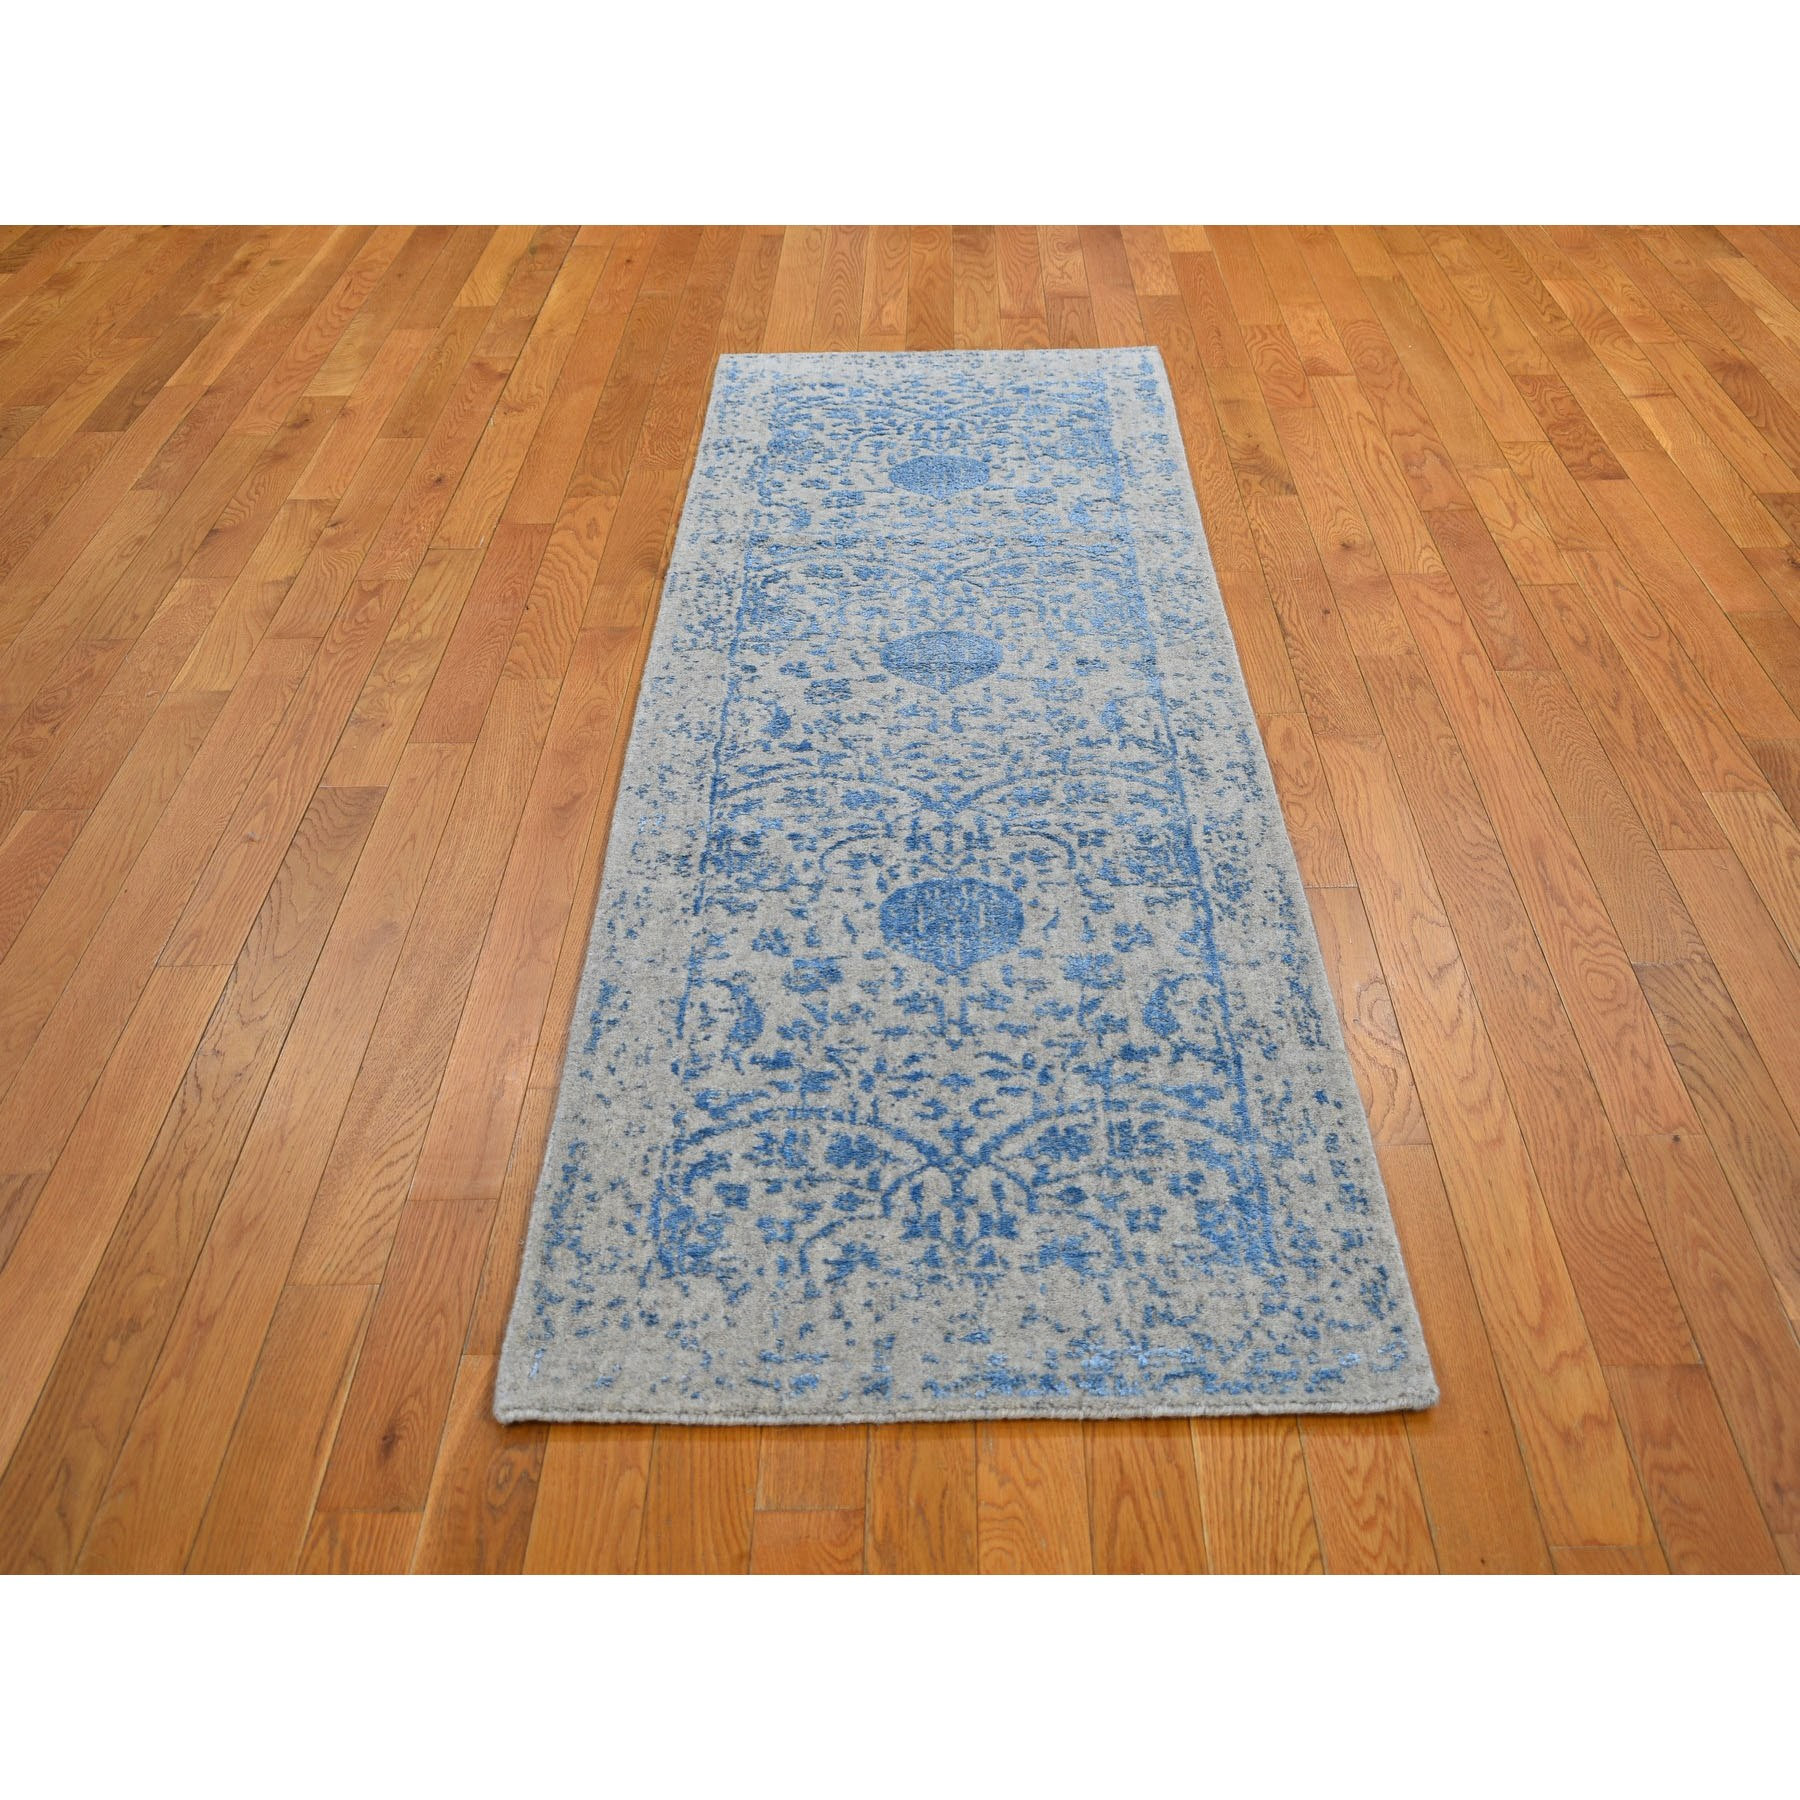 Modern-and-Contemporary-Hand-Loomed-Rug-245860